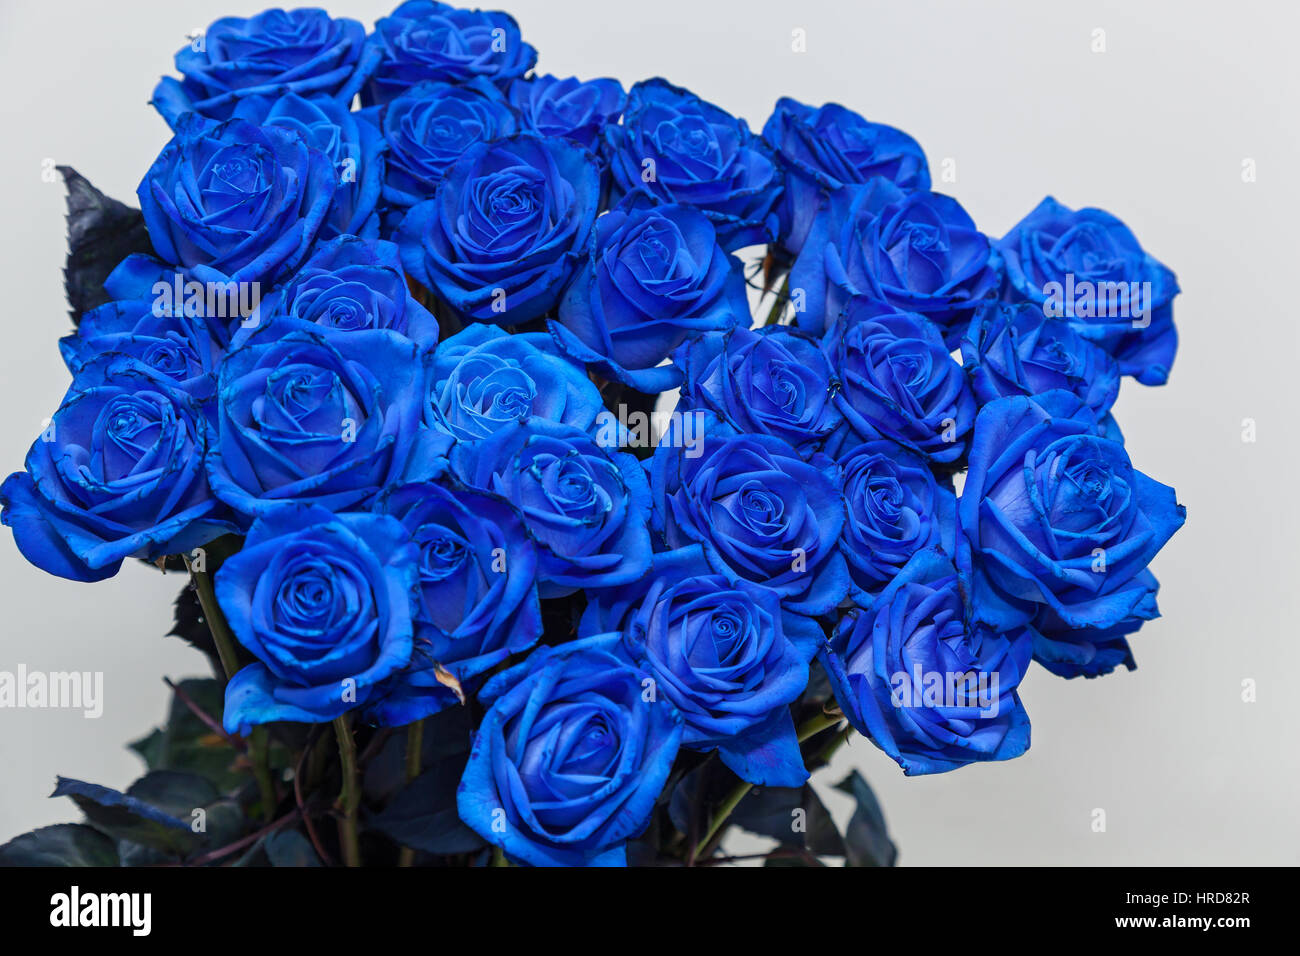 Blue Roses Bouquet Beautiful Roses For Valentines Day Gift Mothers Stock Photo Alamy